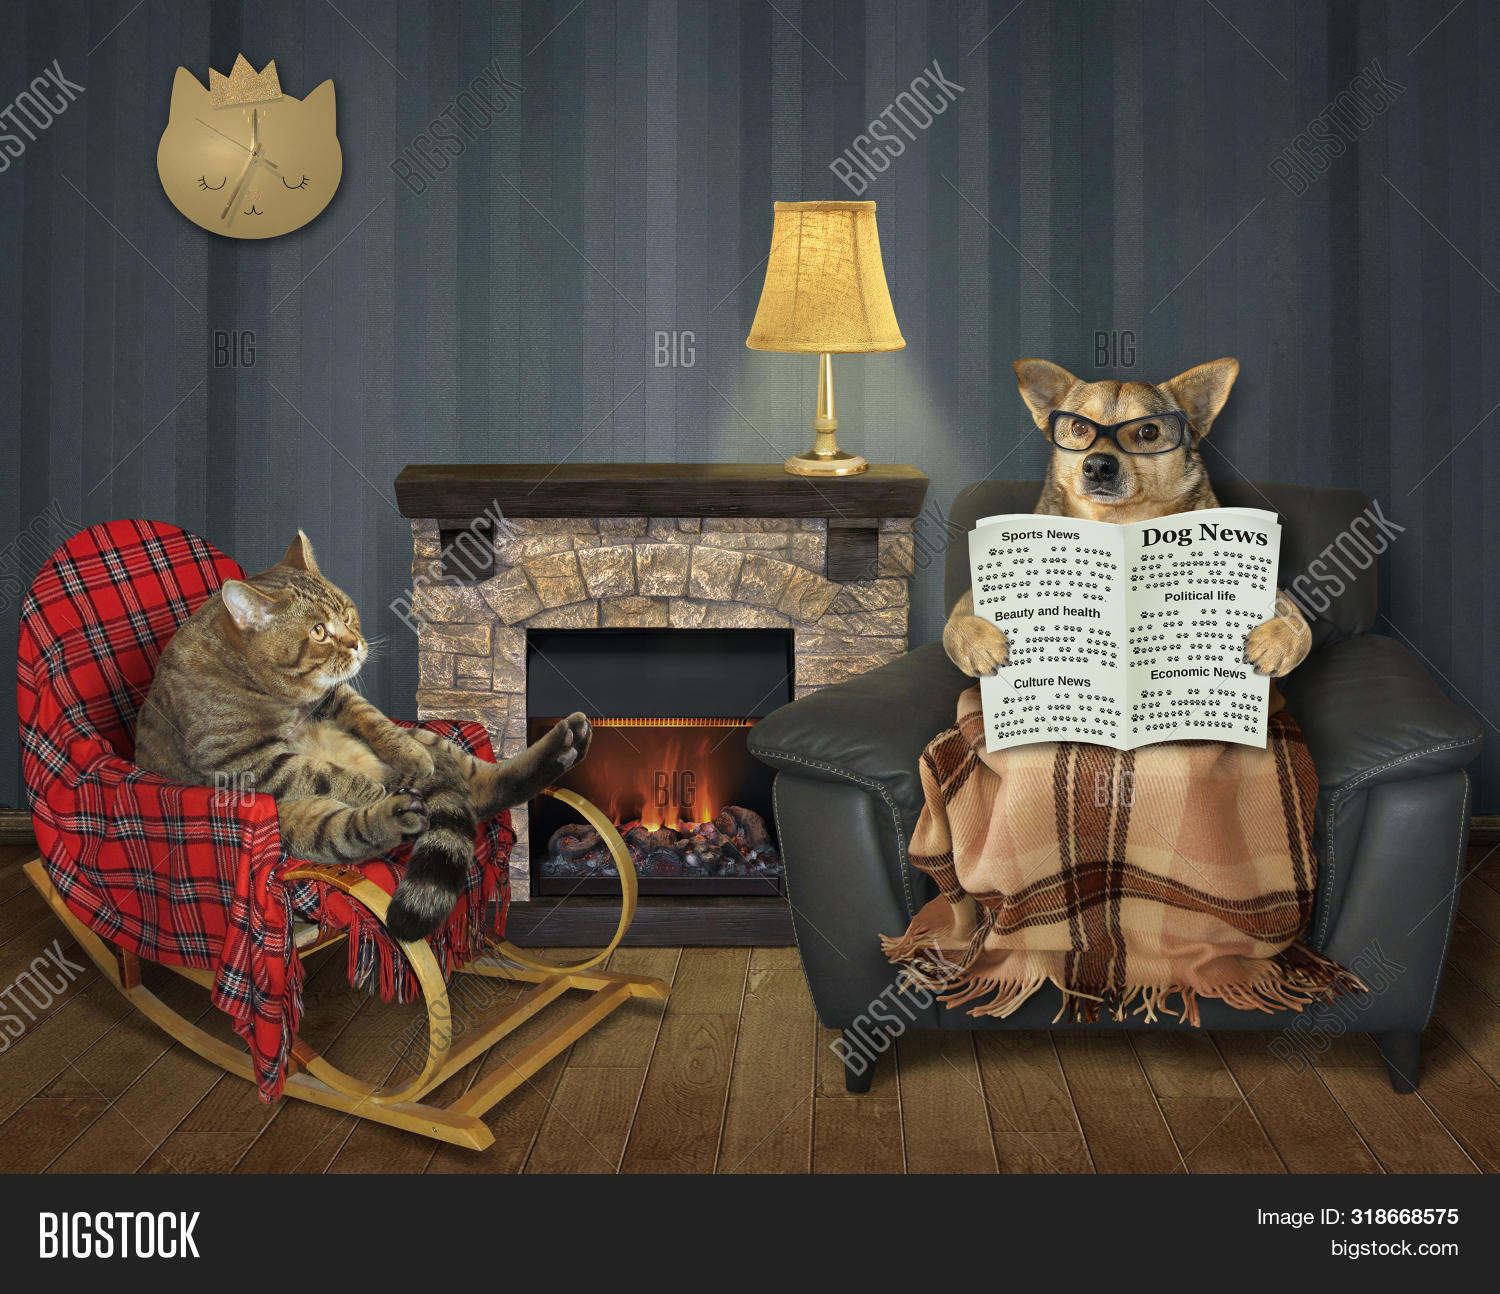 Terrific Cat Wooden Rocking Image Photo Free Trial Bigstock Squirreltailoven Fun Painted Chair Ideas Images Squirreltailovenorg